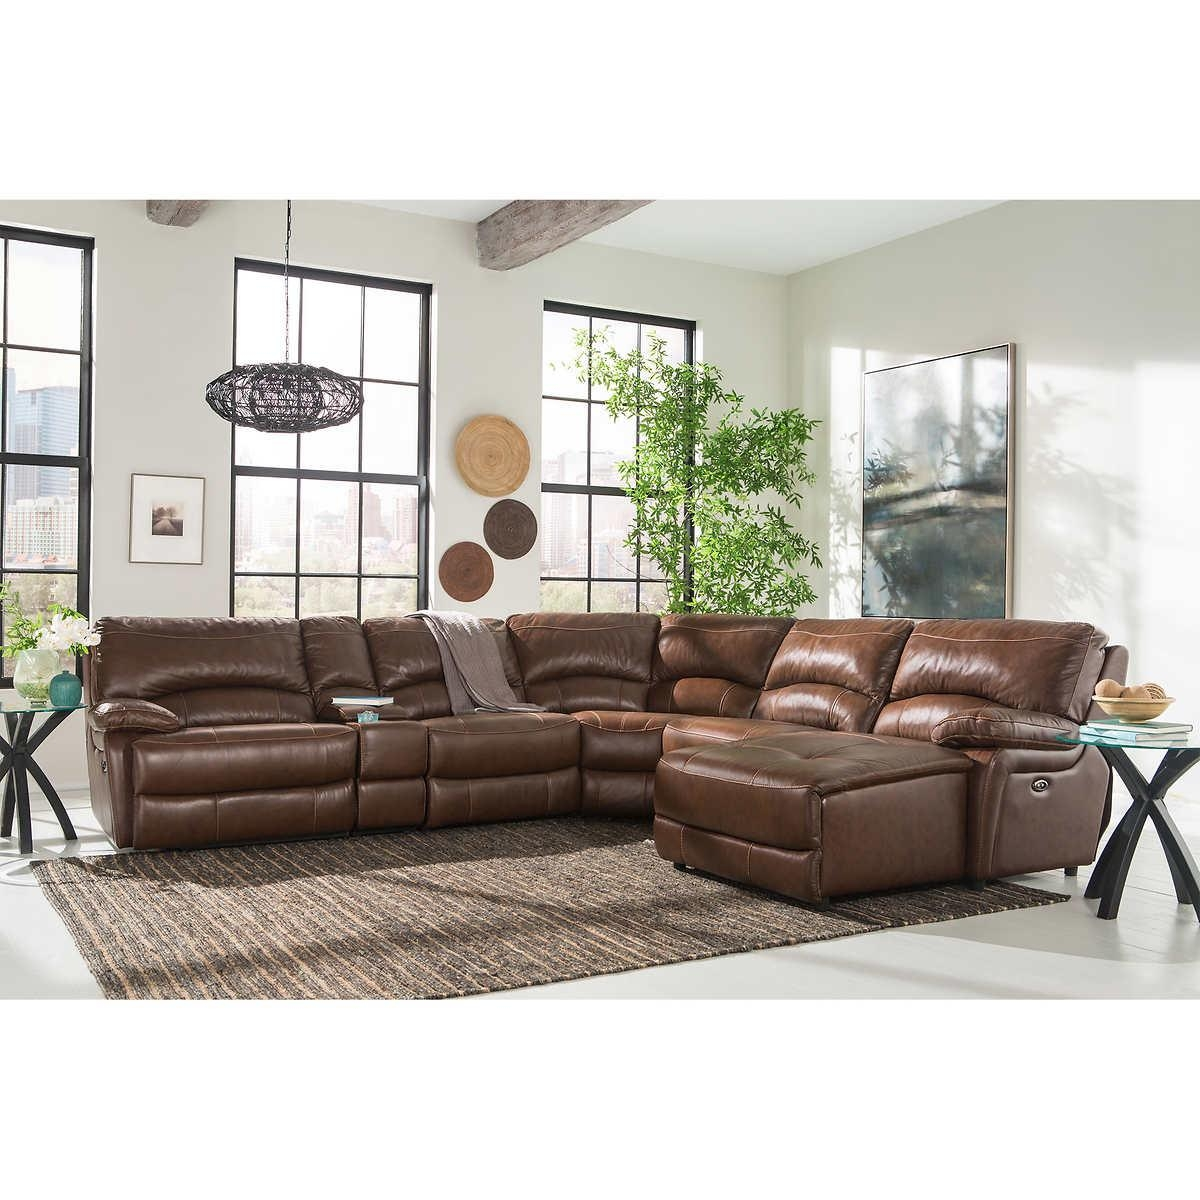 Sectional Leather Sofas | Tehranmix Decoration With Regard To Sofas And Sectionals (Image 16 of 20)